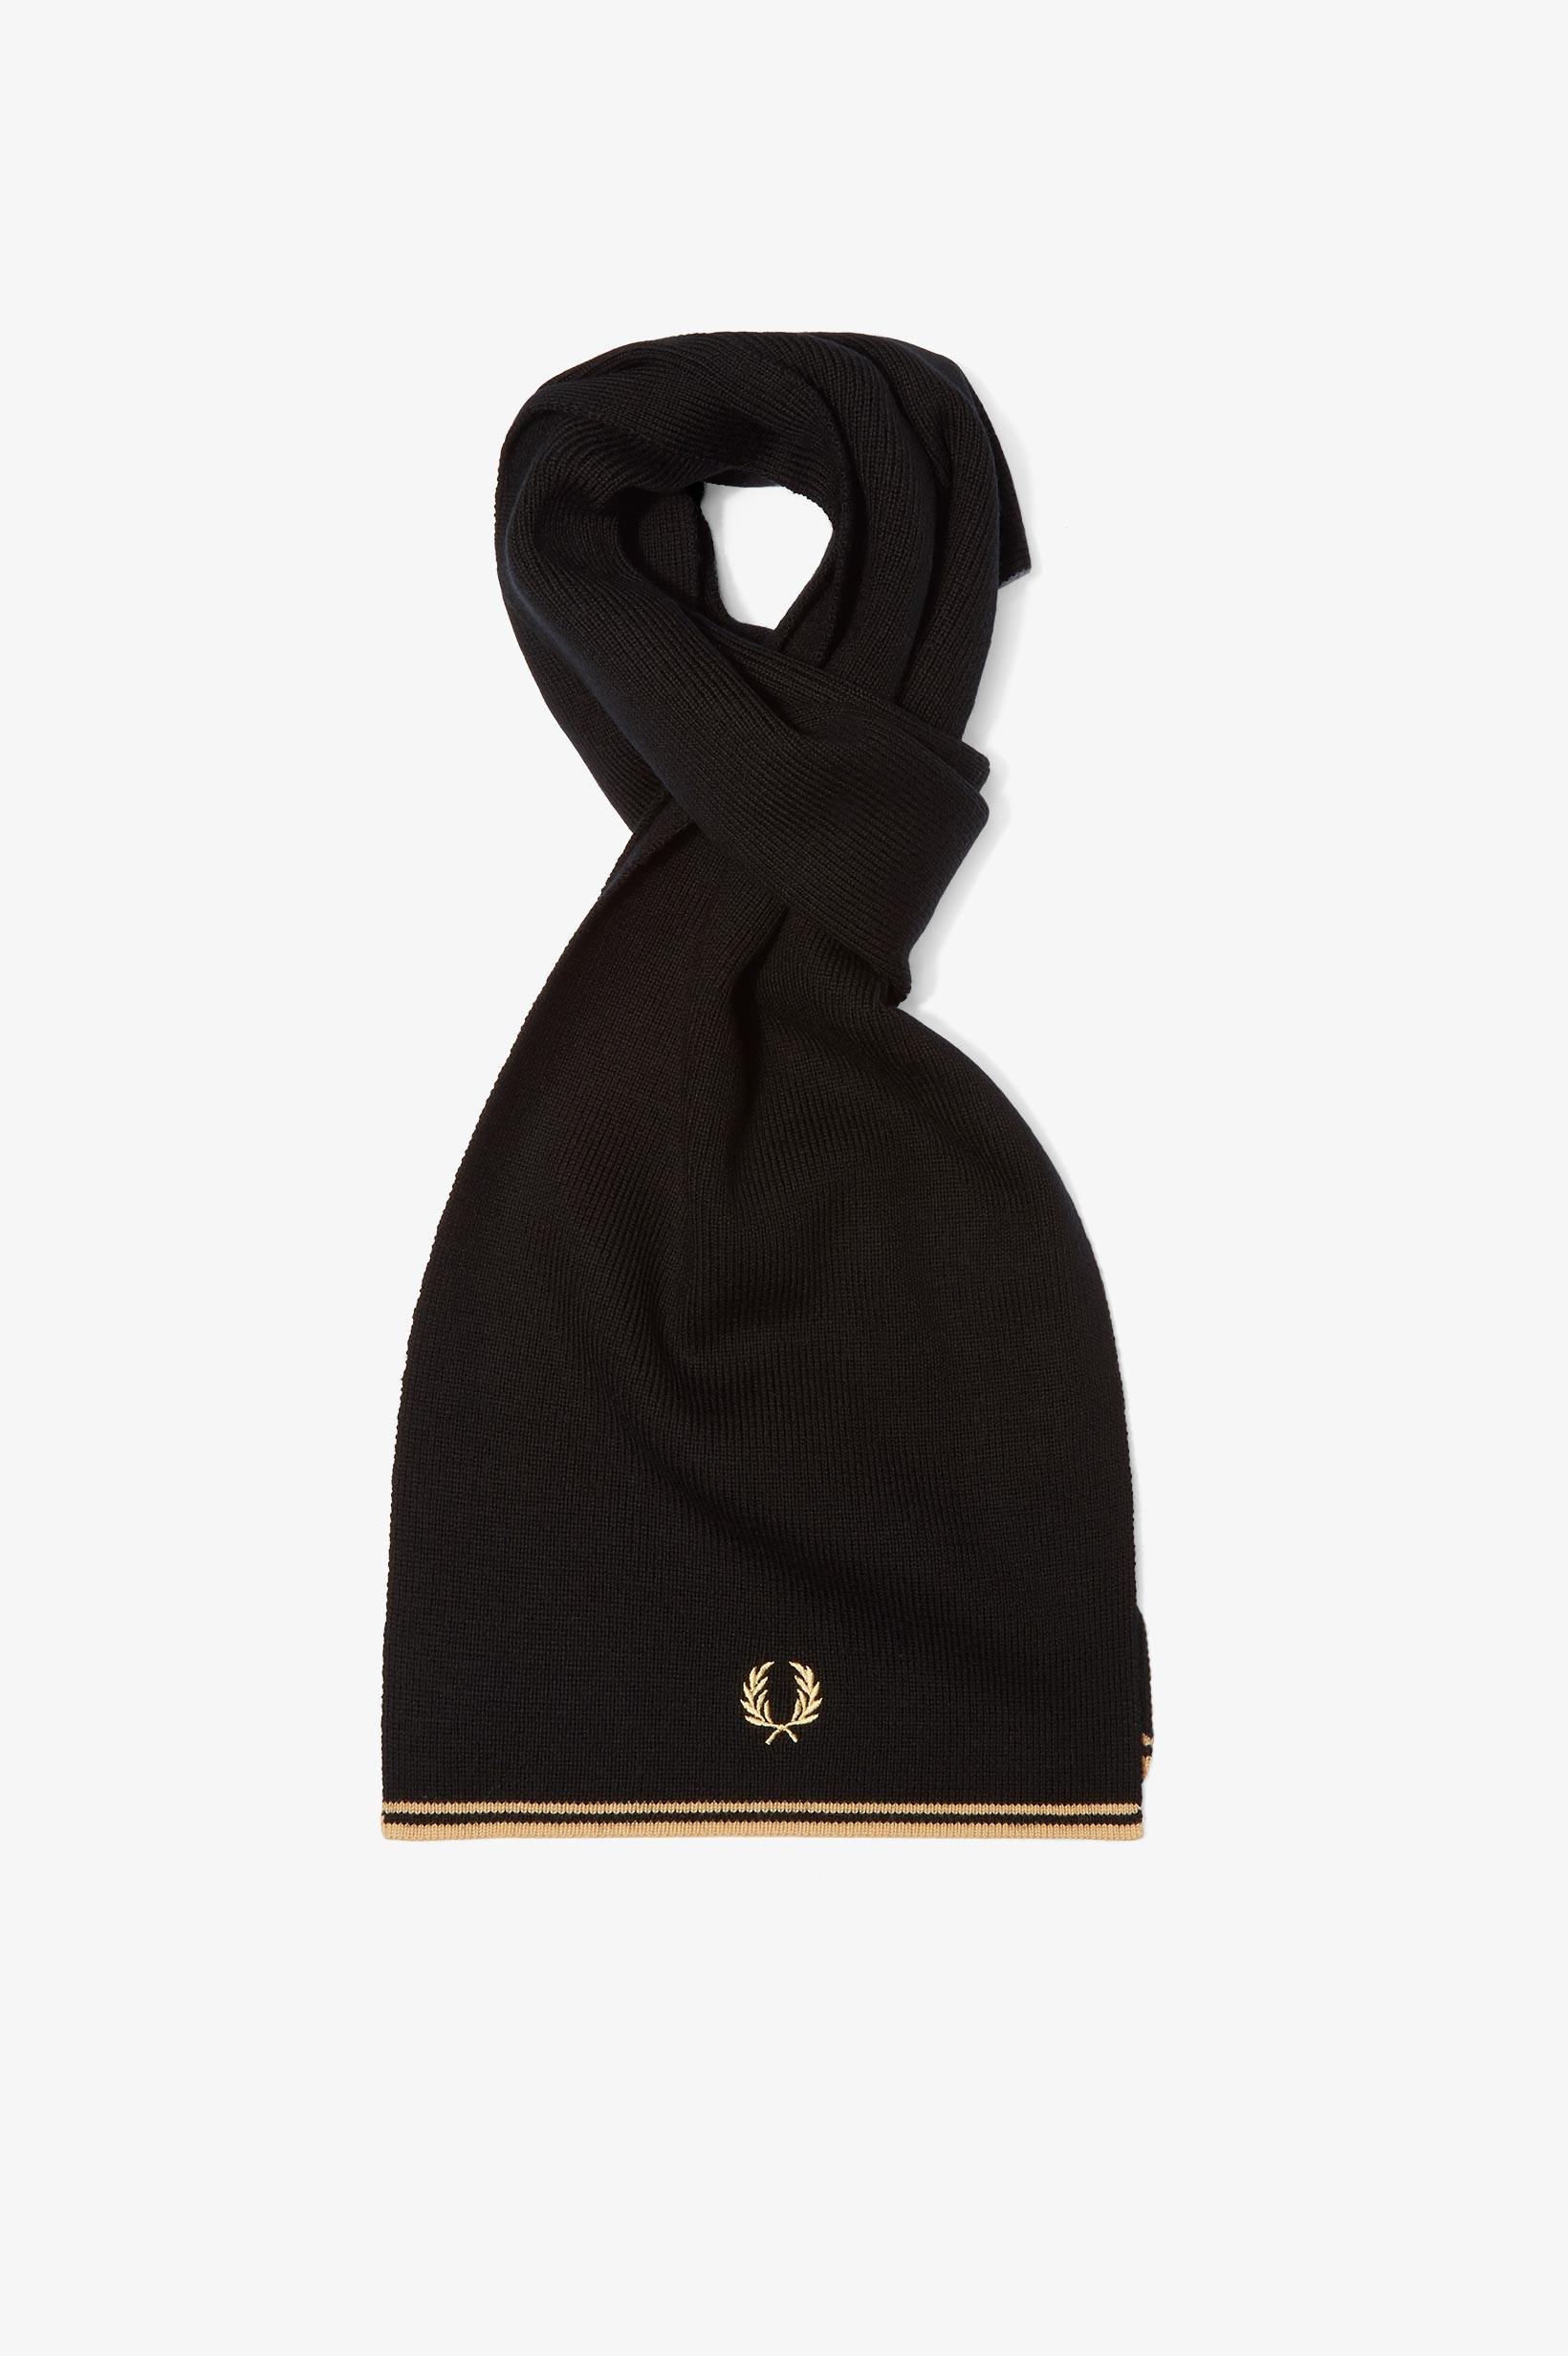 Fred Perry Black Twin Tipped Merino Wool Scarf